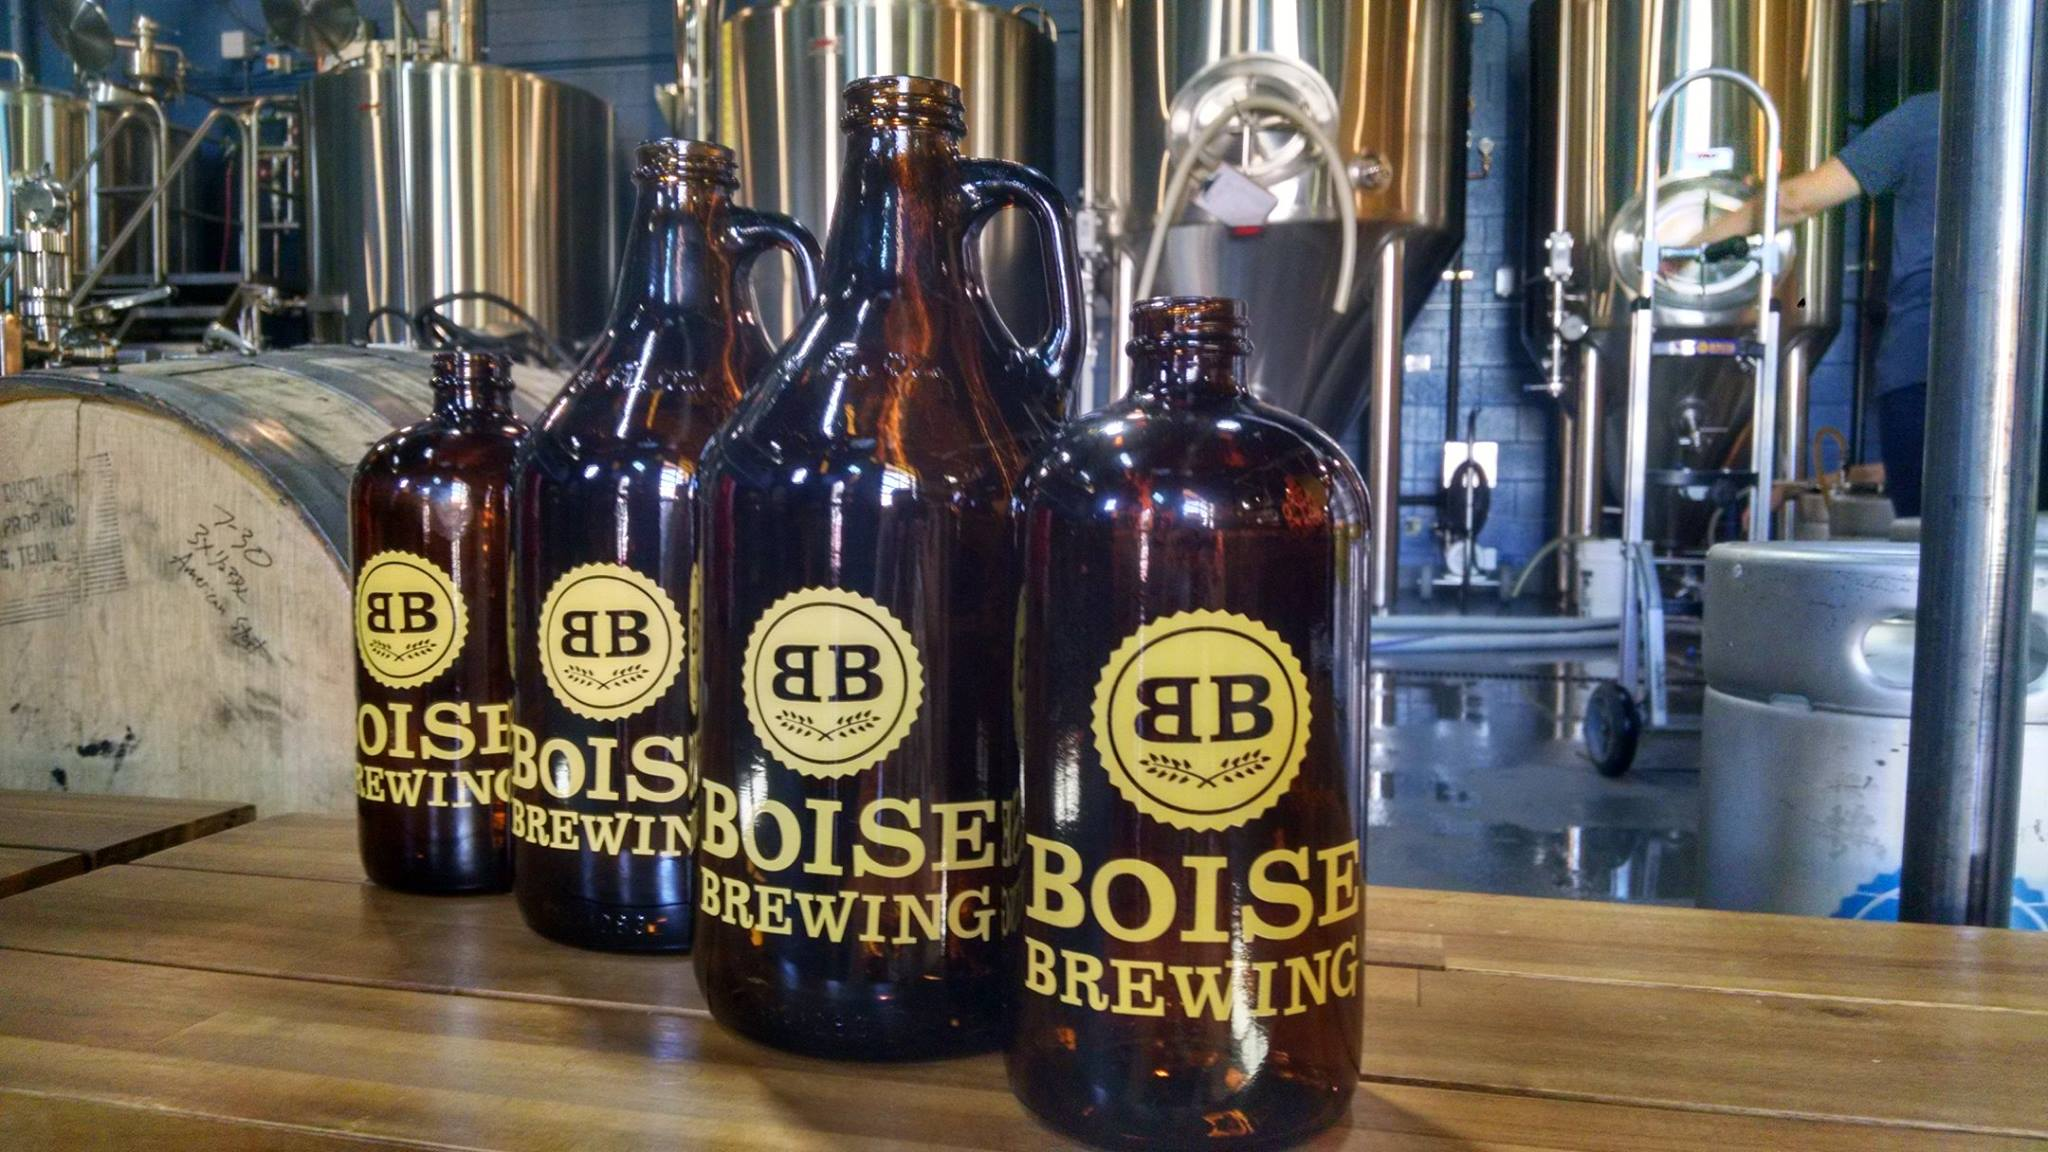 Boise Brewing Growlers | Courtesy of Boise Brewing